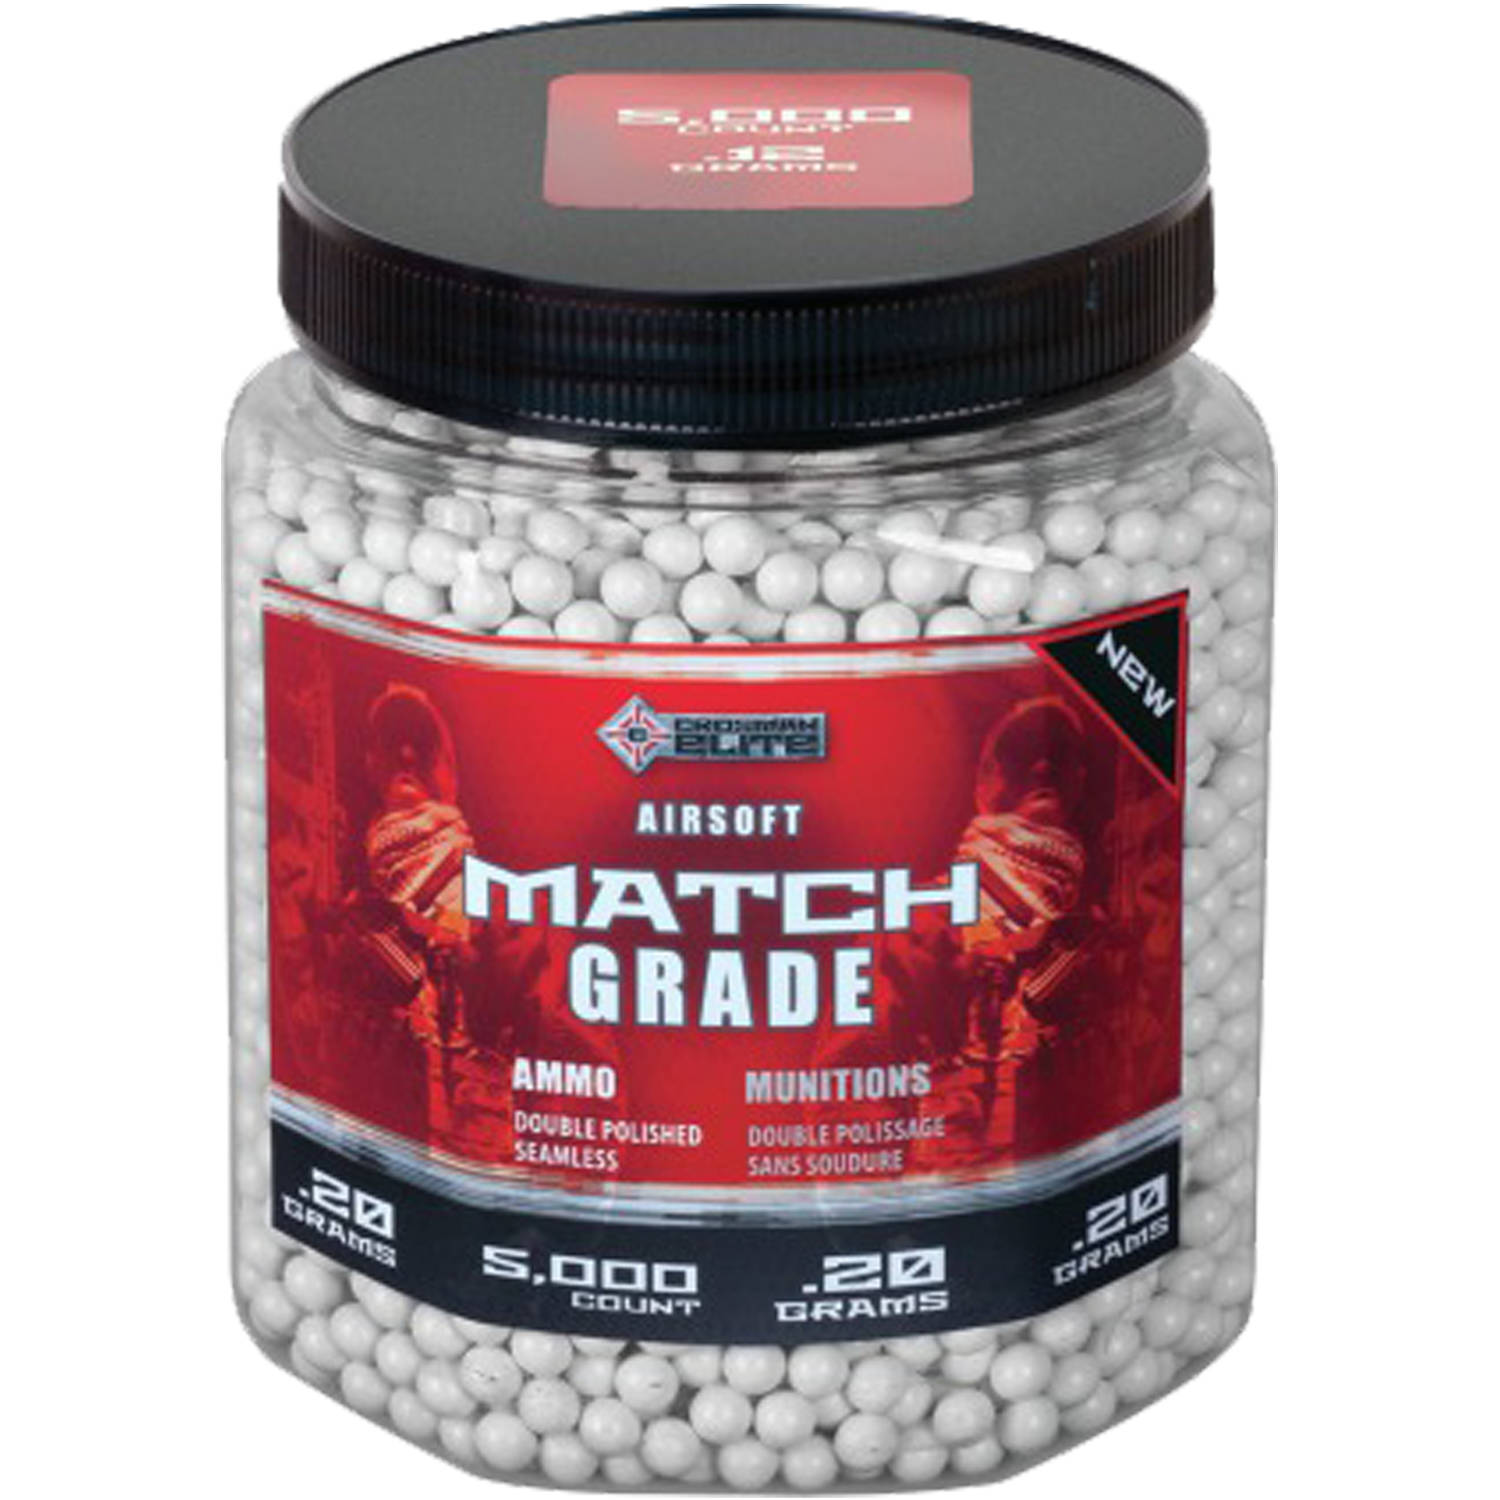 Crosman Airsoft Heavy Ammo, 5,000 Ct.